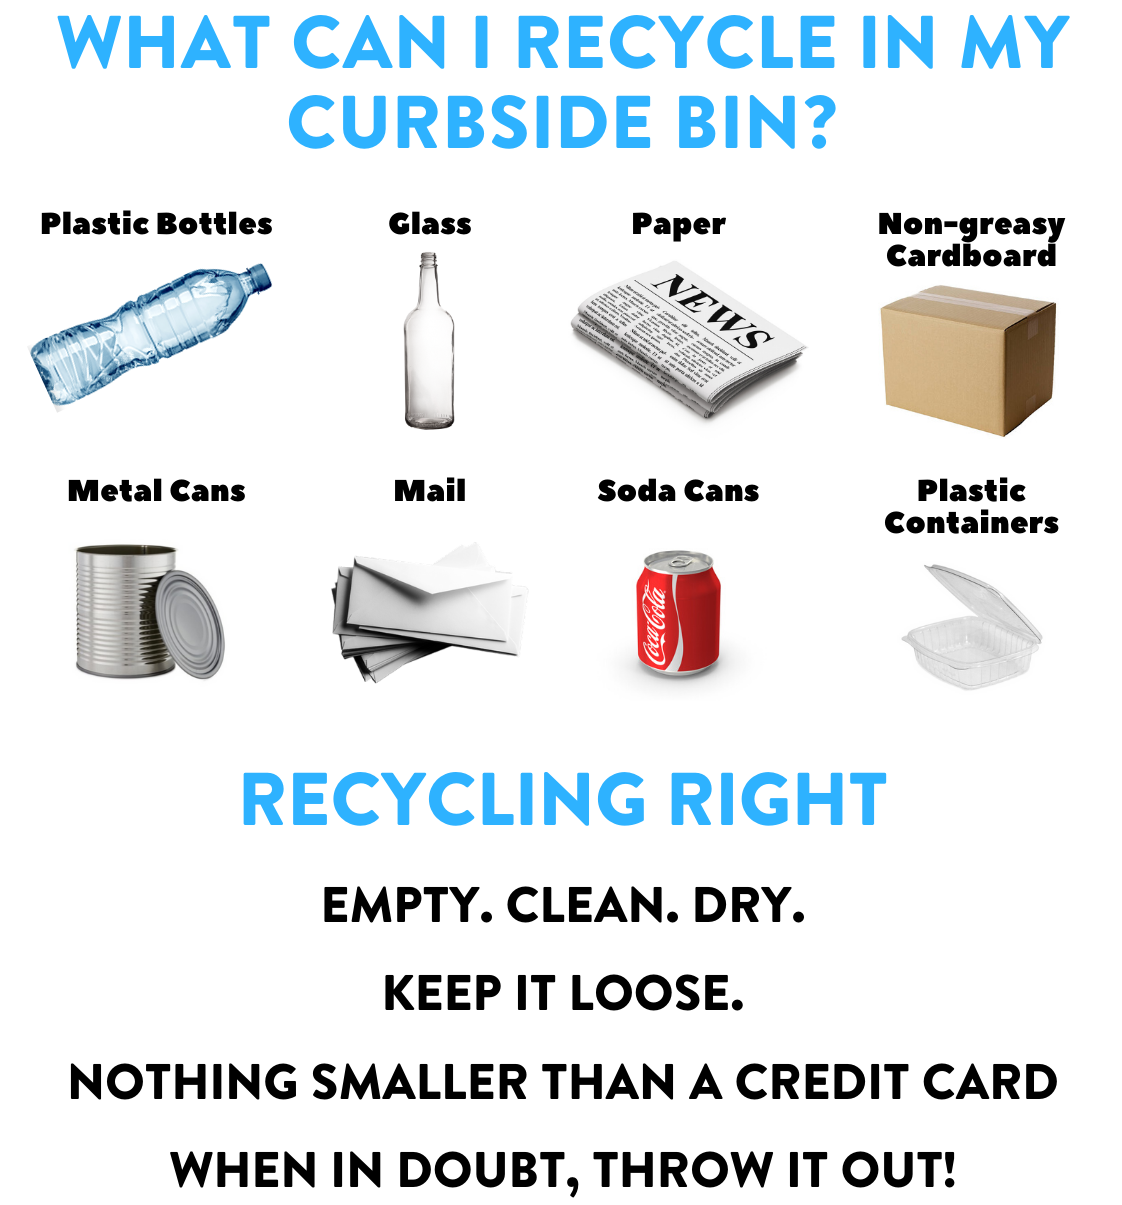 What Can I Recycle In My Curbside Bin